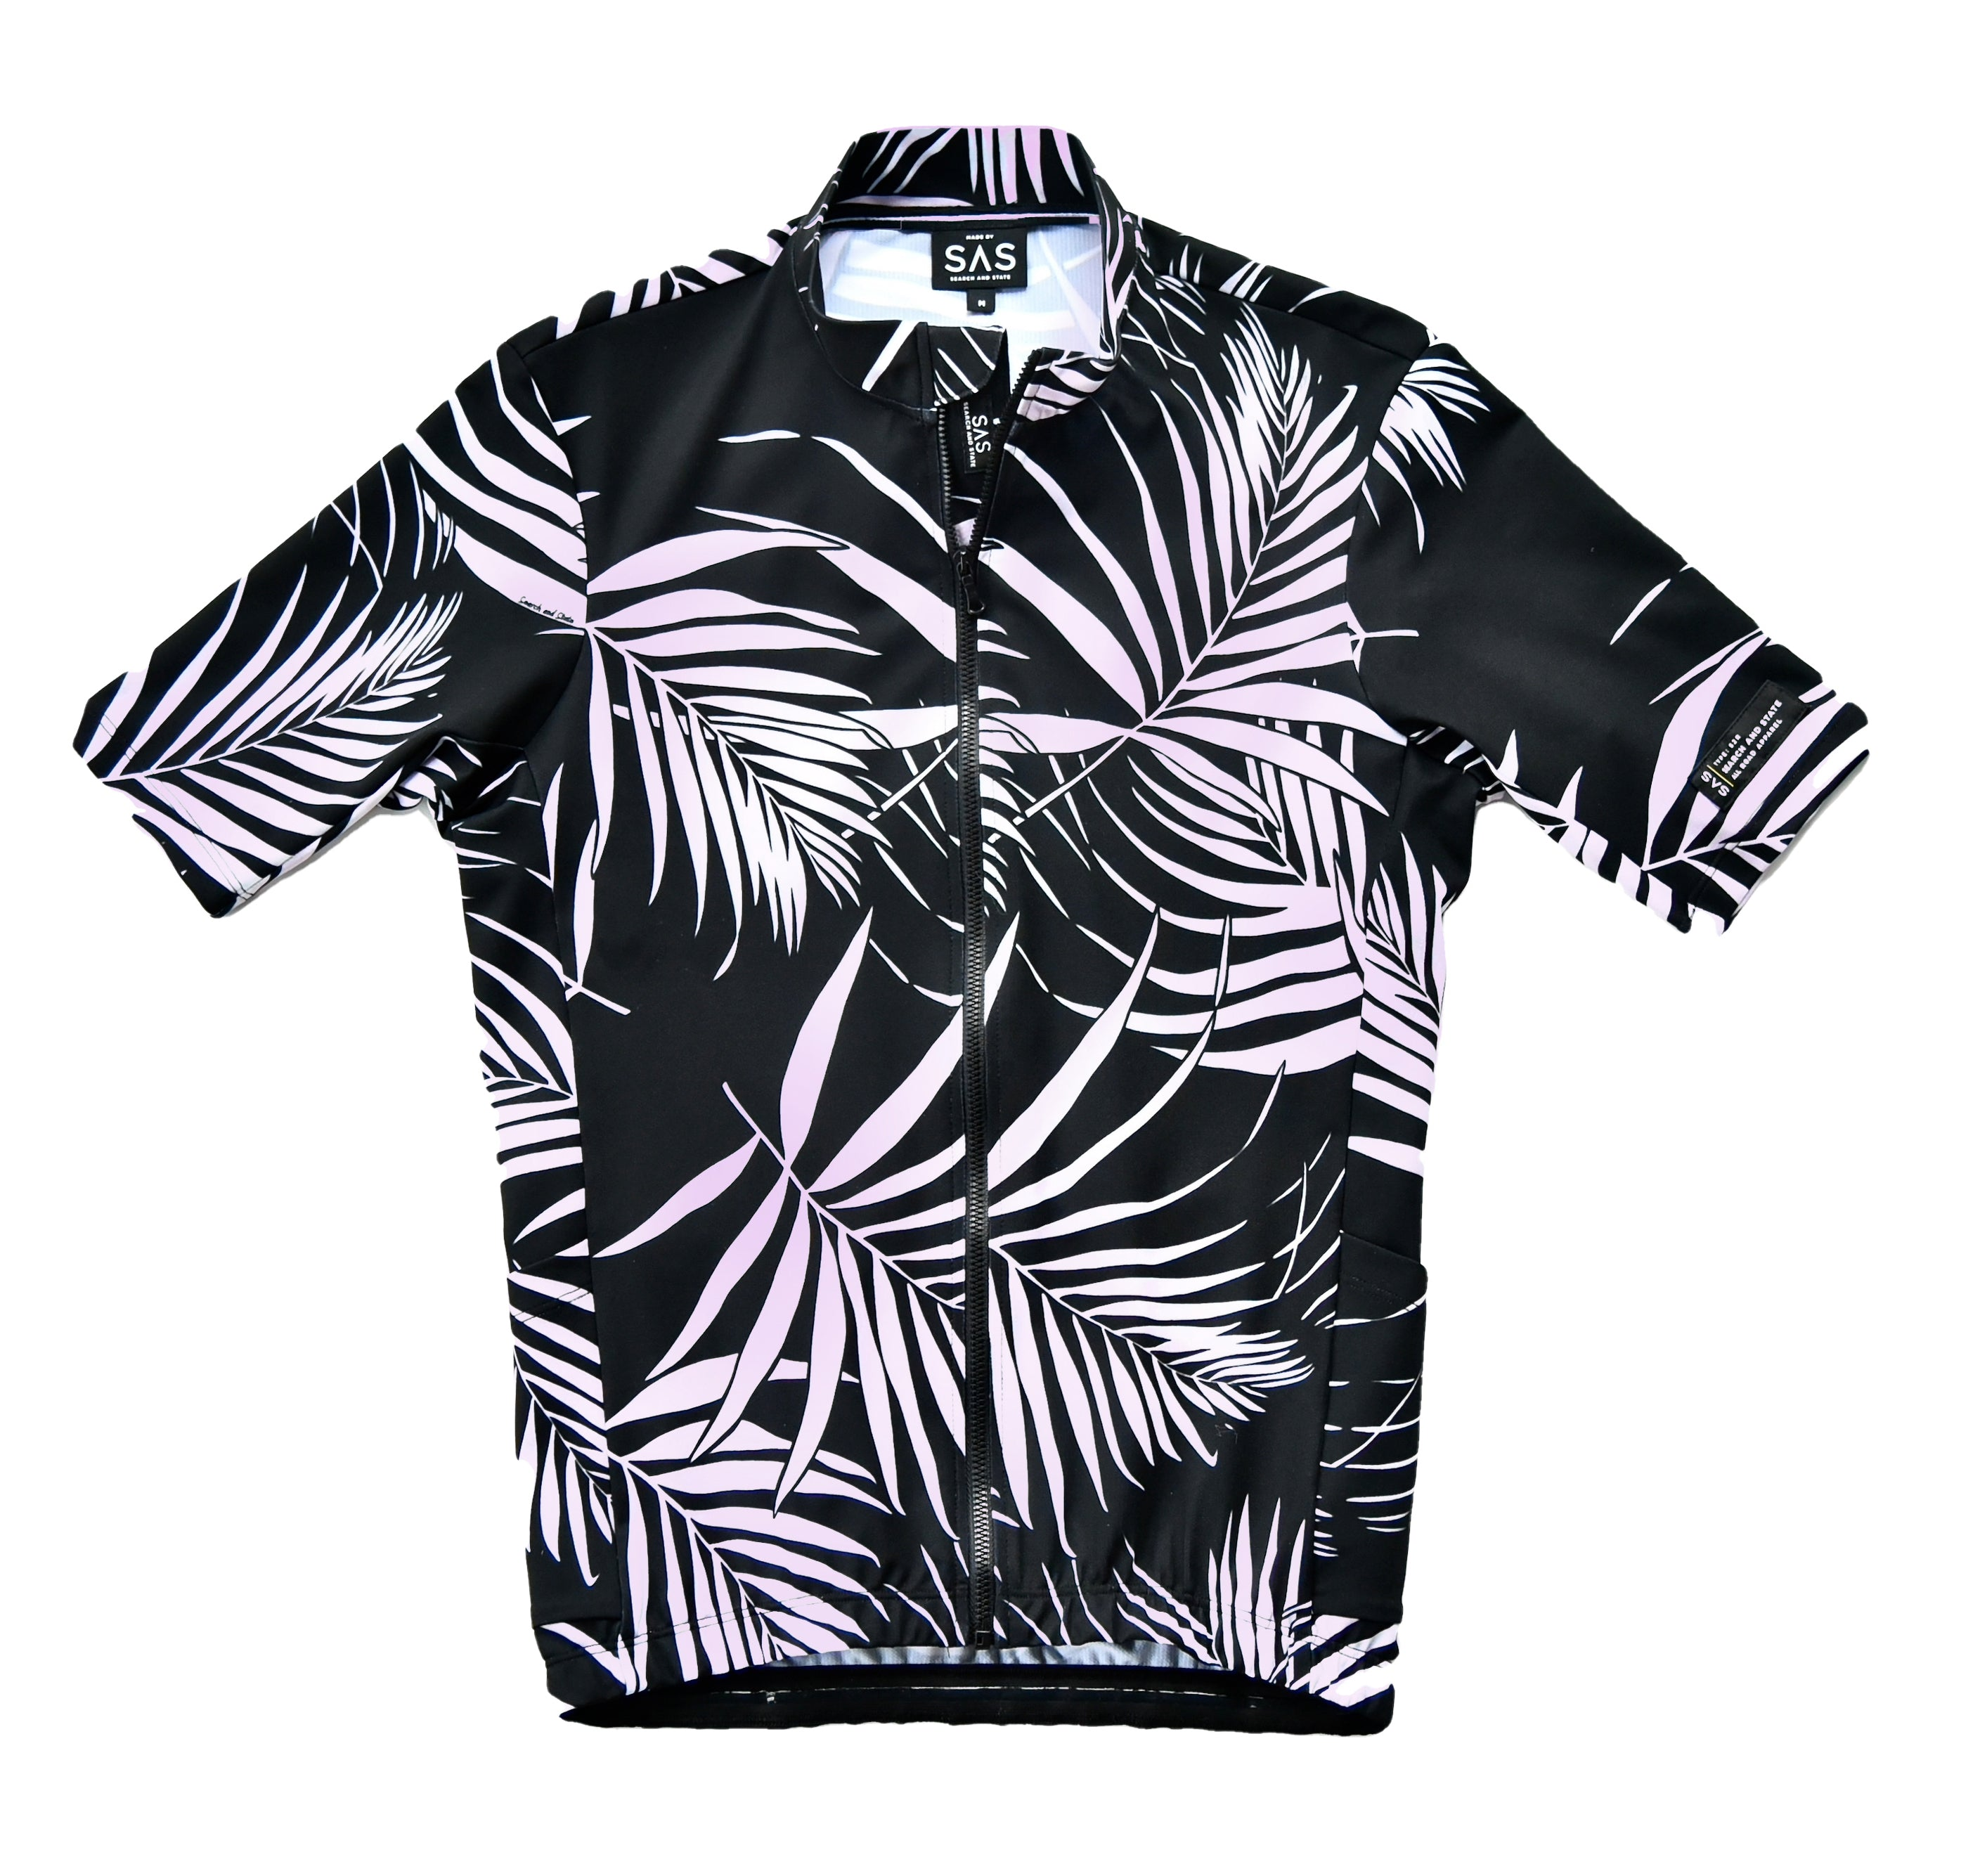 The Black Palm S2-R Jersey